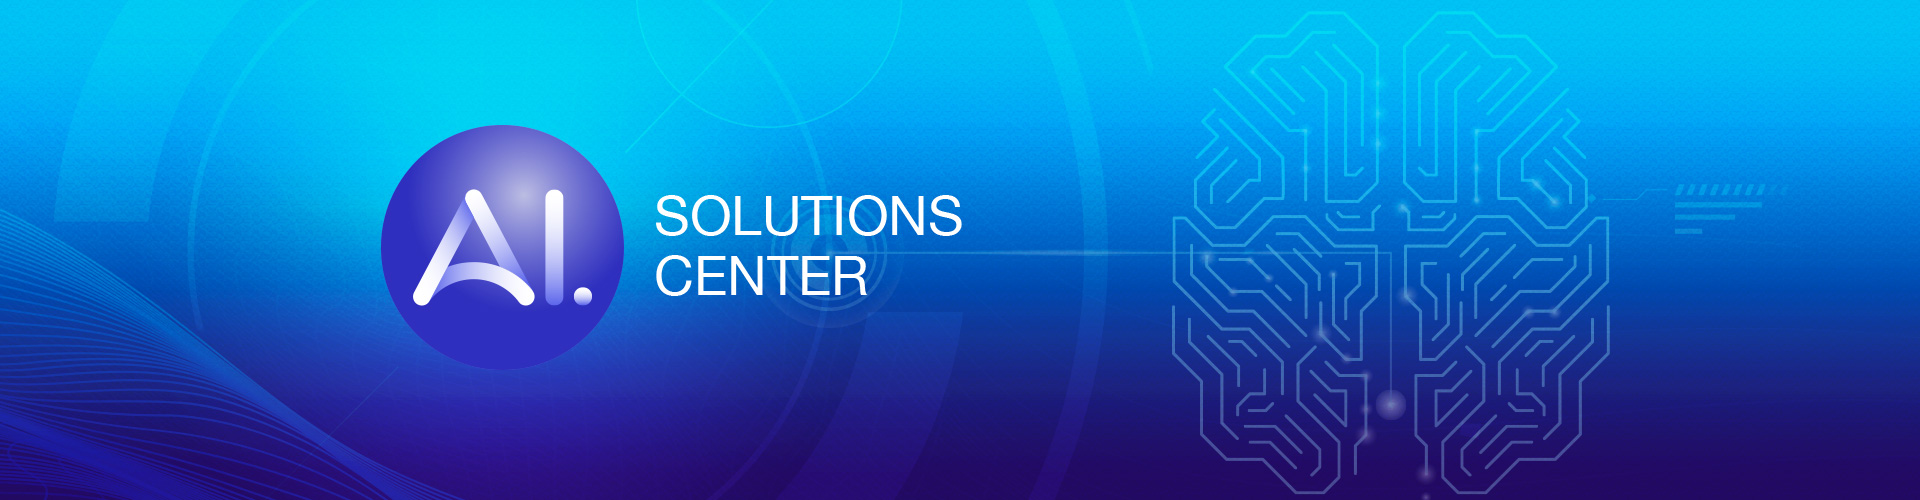 AI Solutions Center